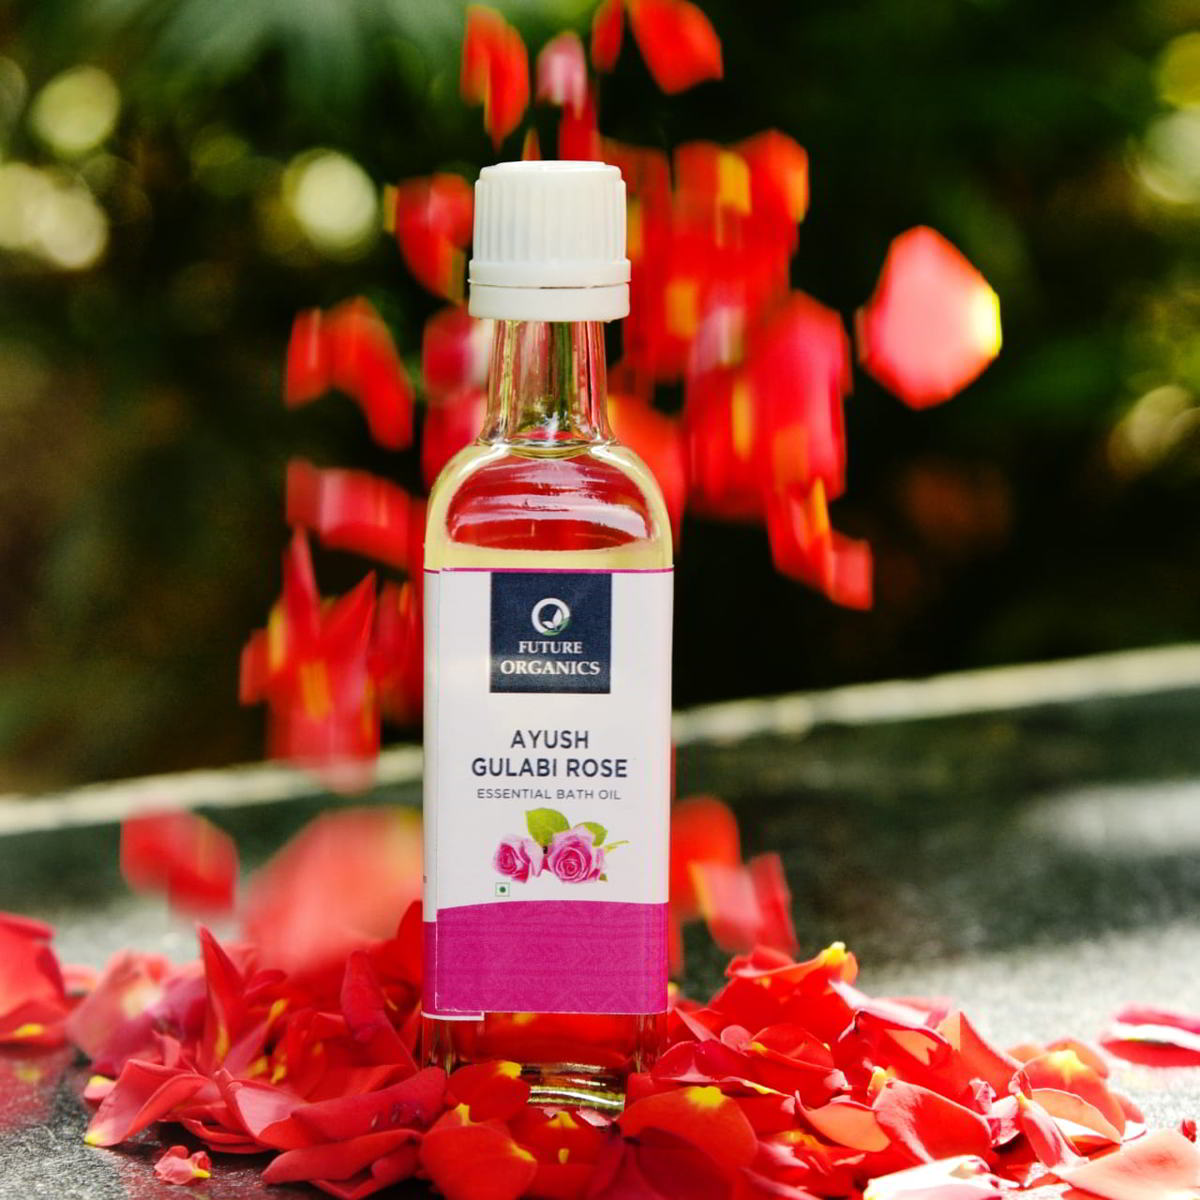 AYUSH GULABI ROSE